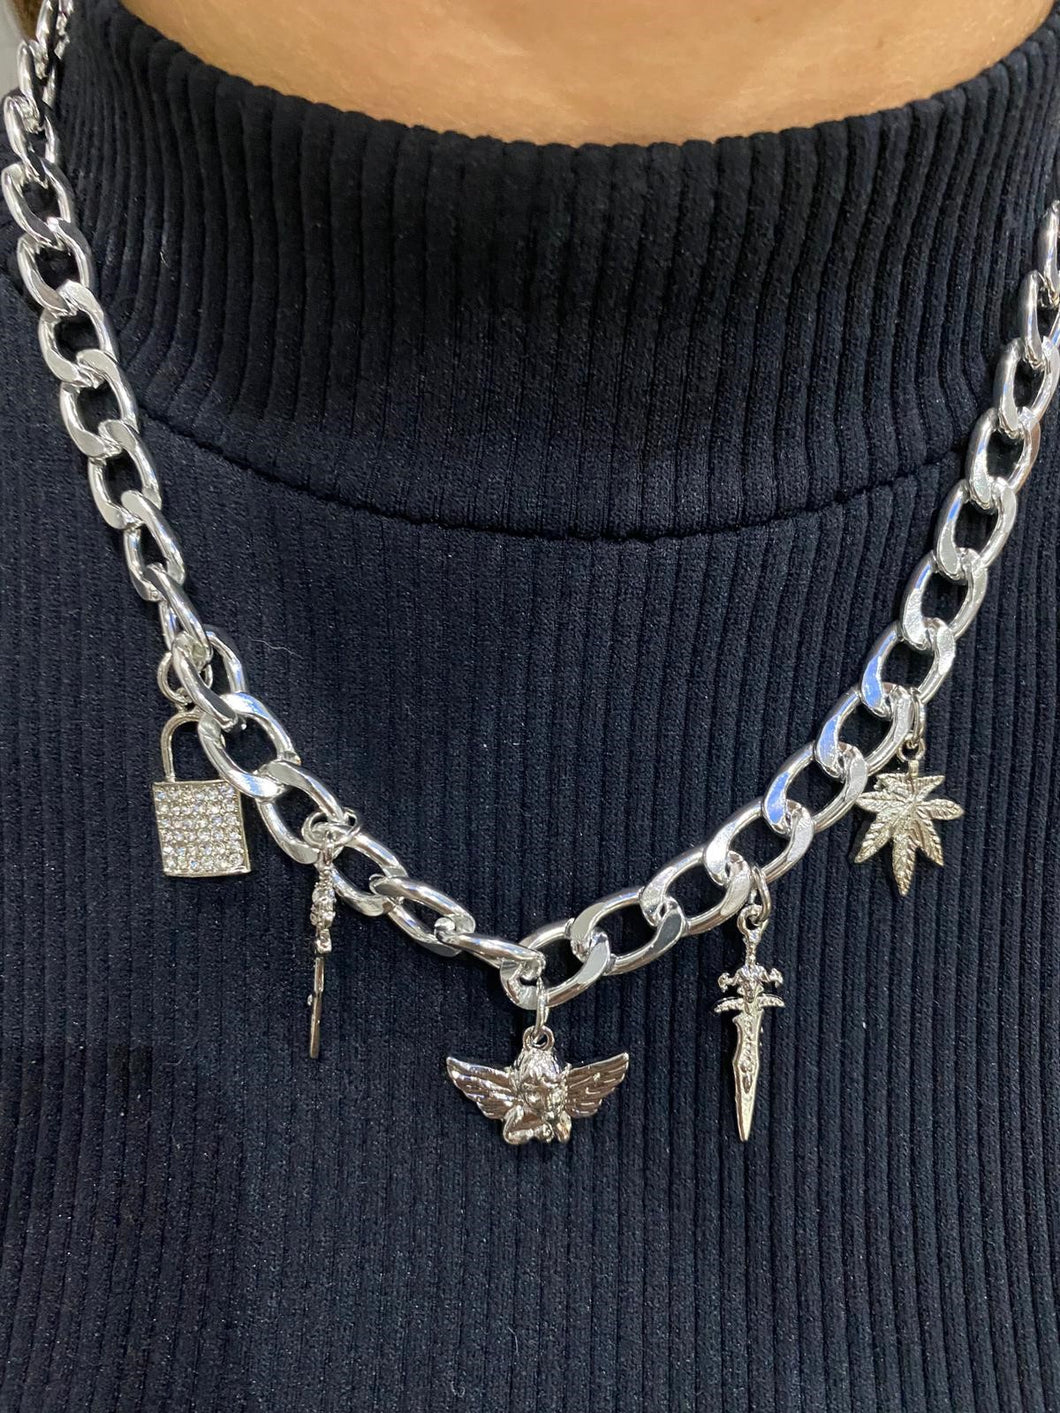 Silver Single Punk Charm Necklace